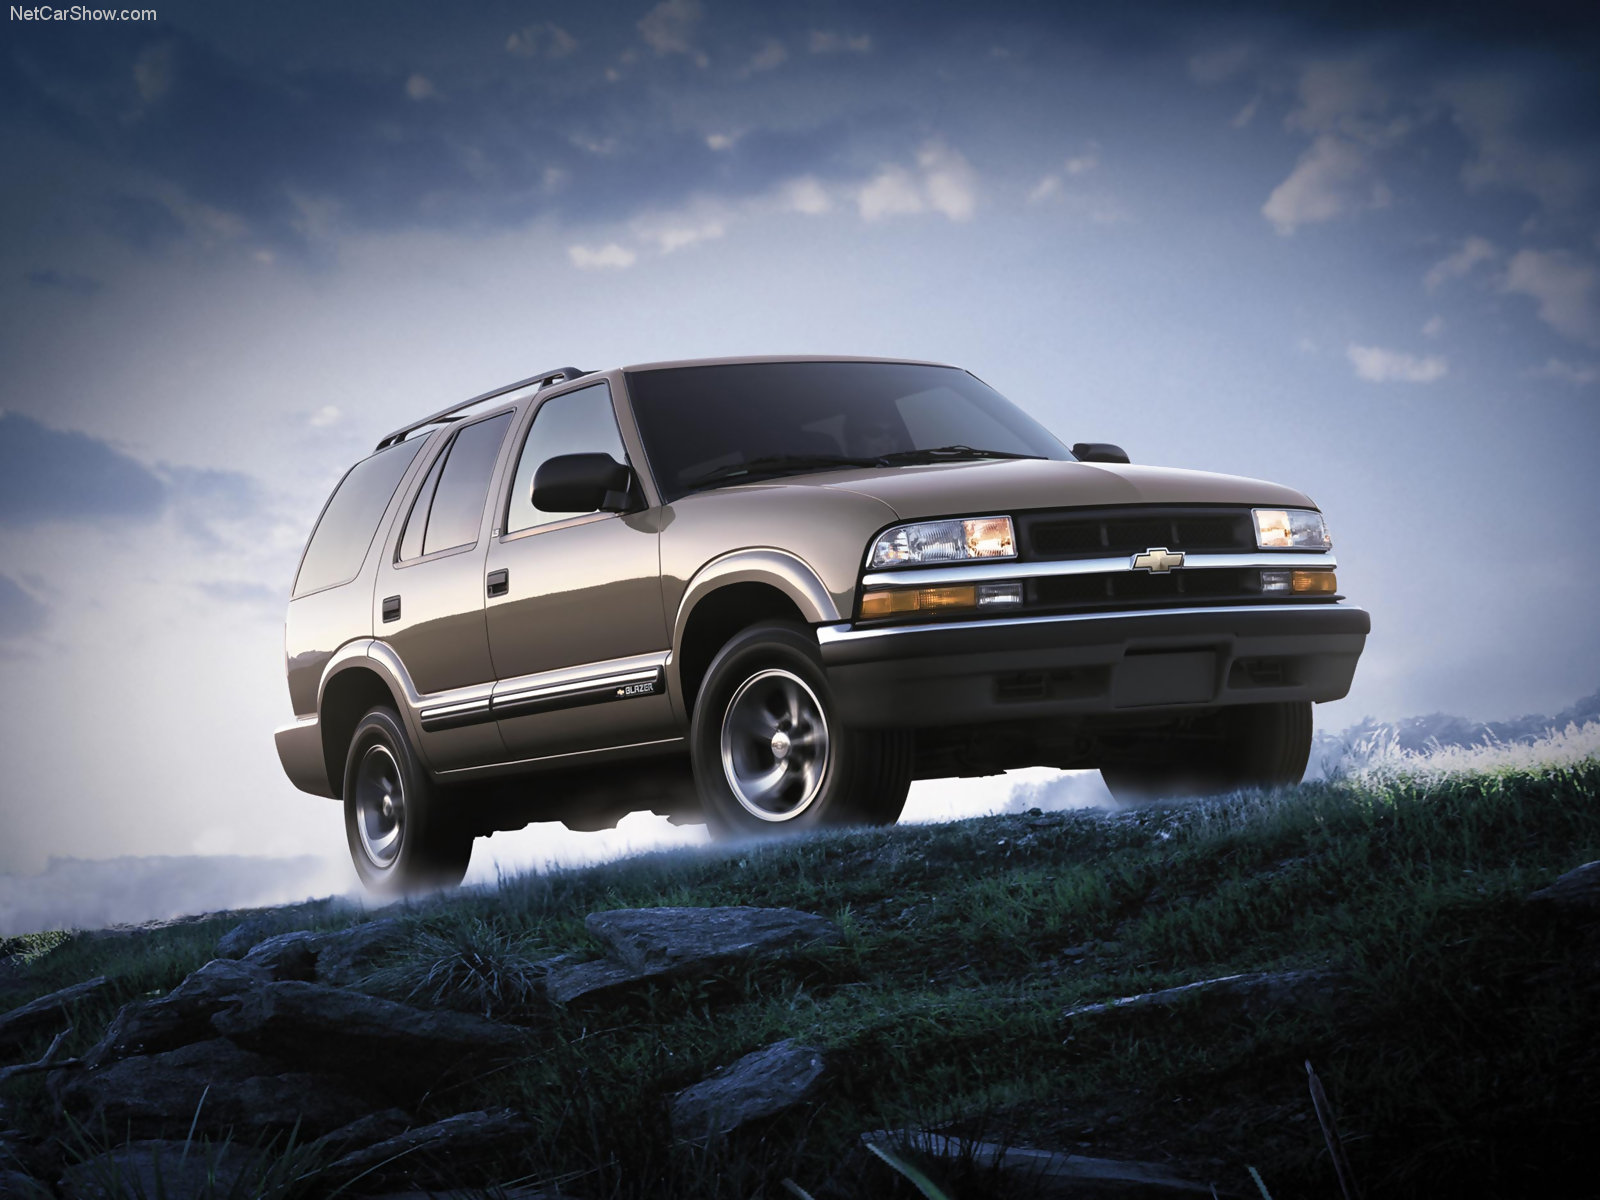 2001 Chevrolet Blazer Vin Number Search Autodetective